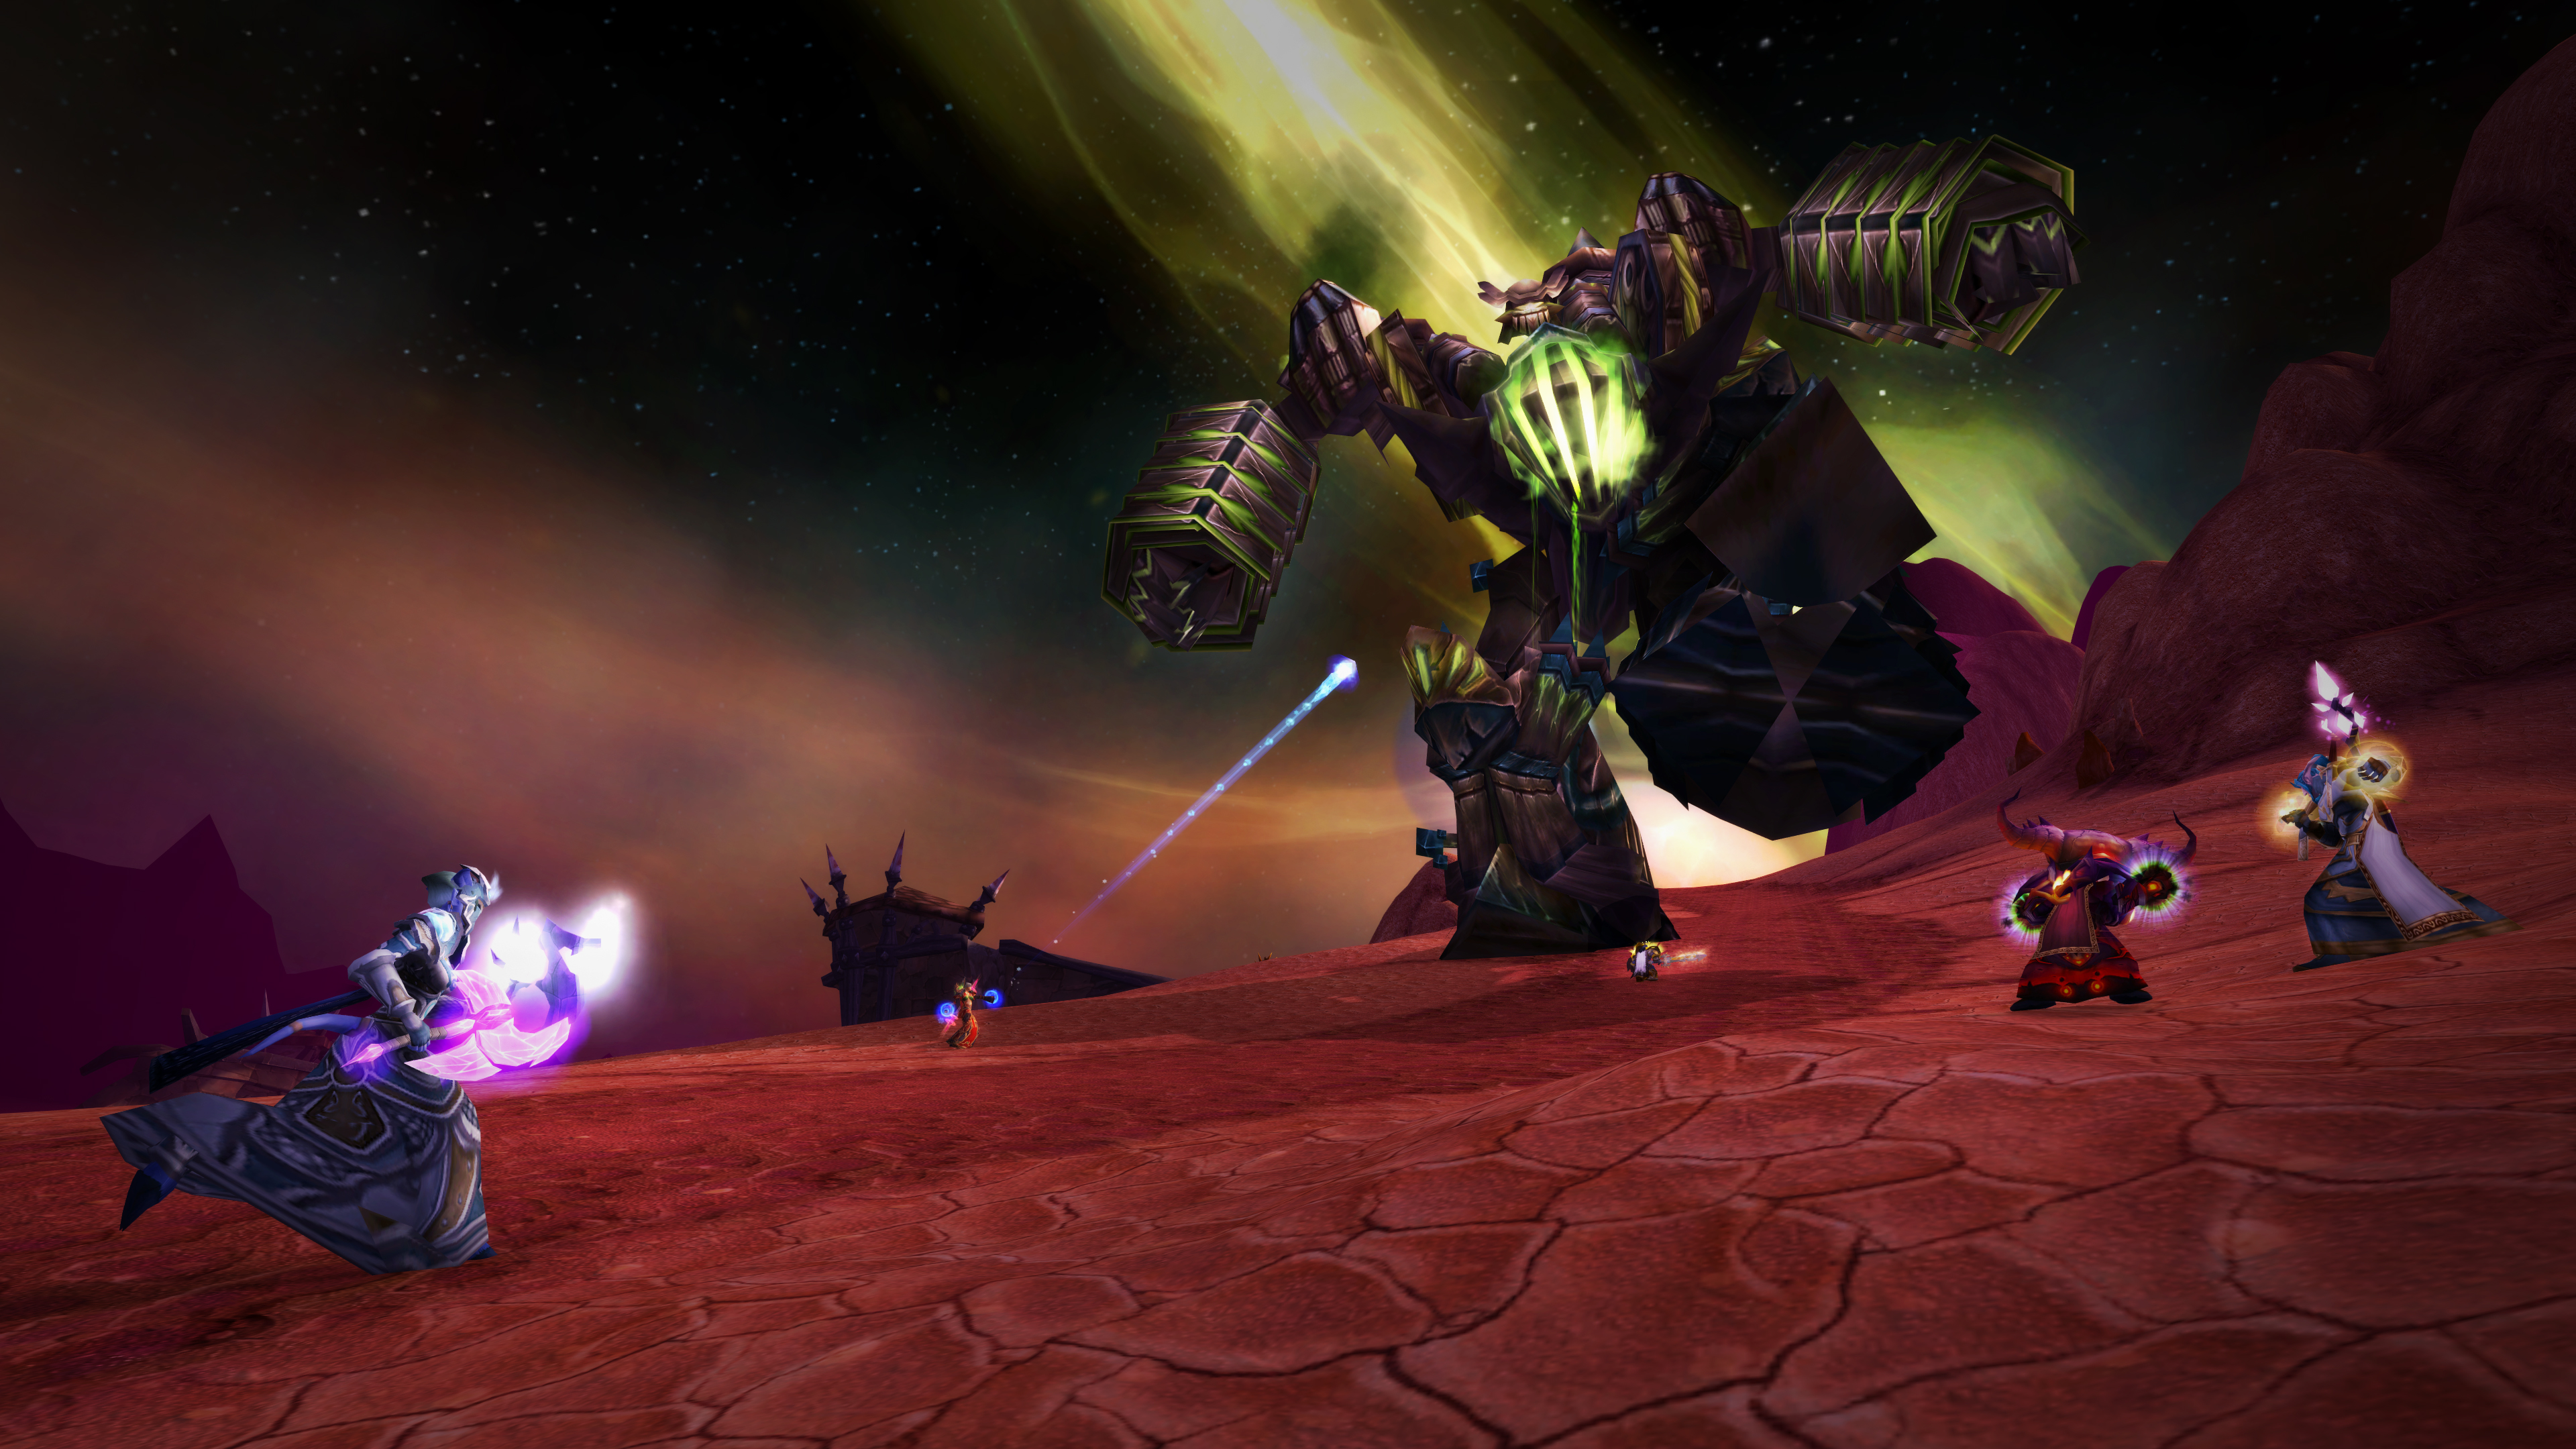 WoW: Burning Crusade Classic will use its much harder pre-nerf raid bosses because you're all much better at the game now